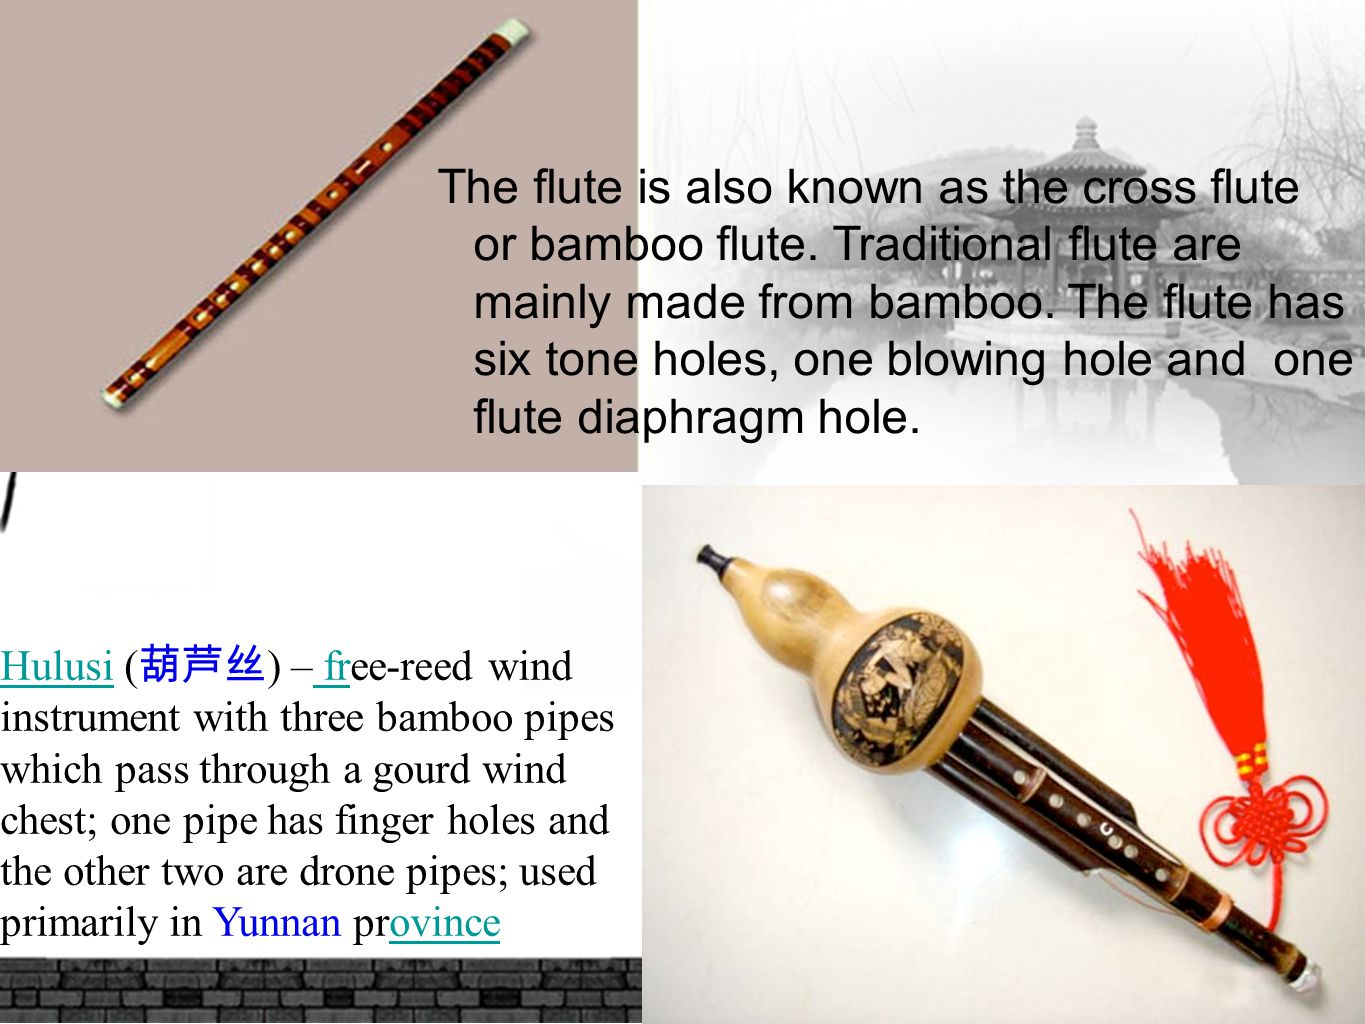 The flute is also known as the cross flute or bamboo flute